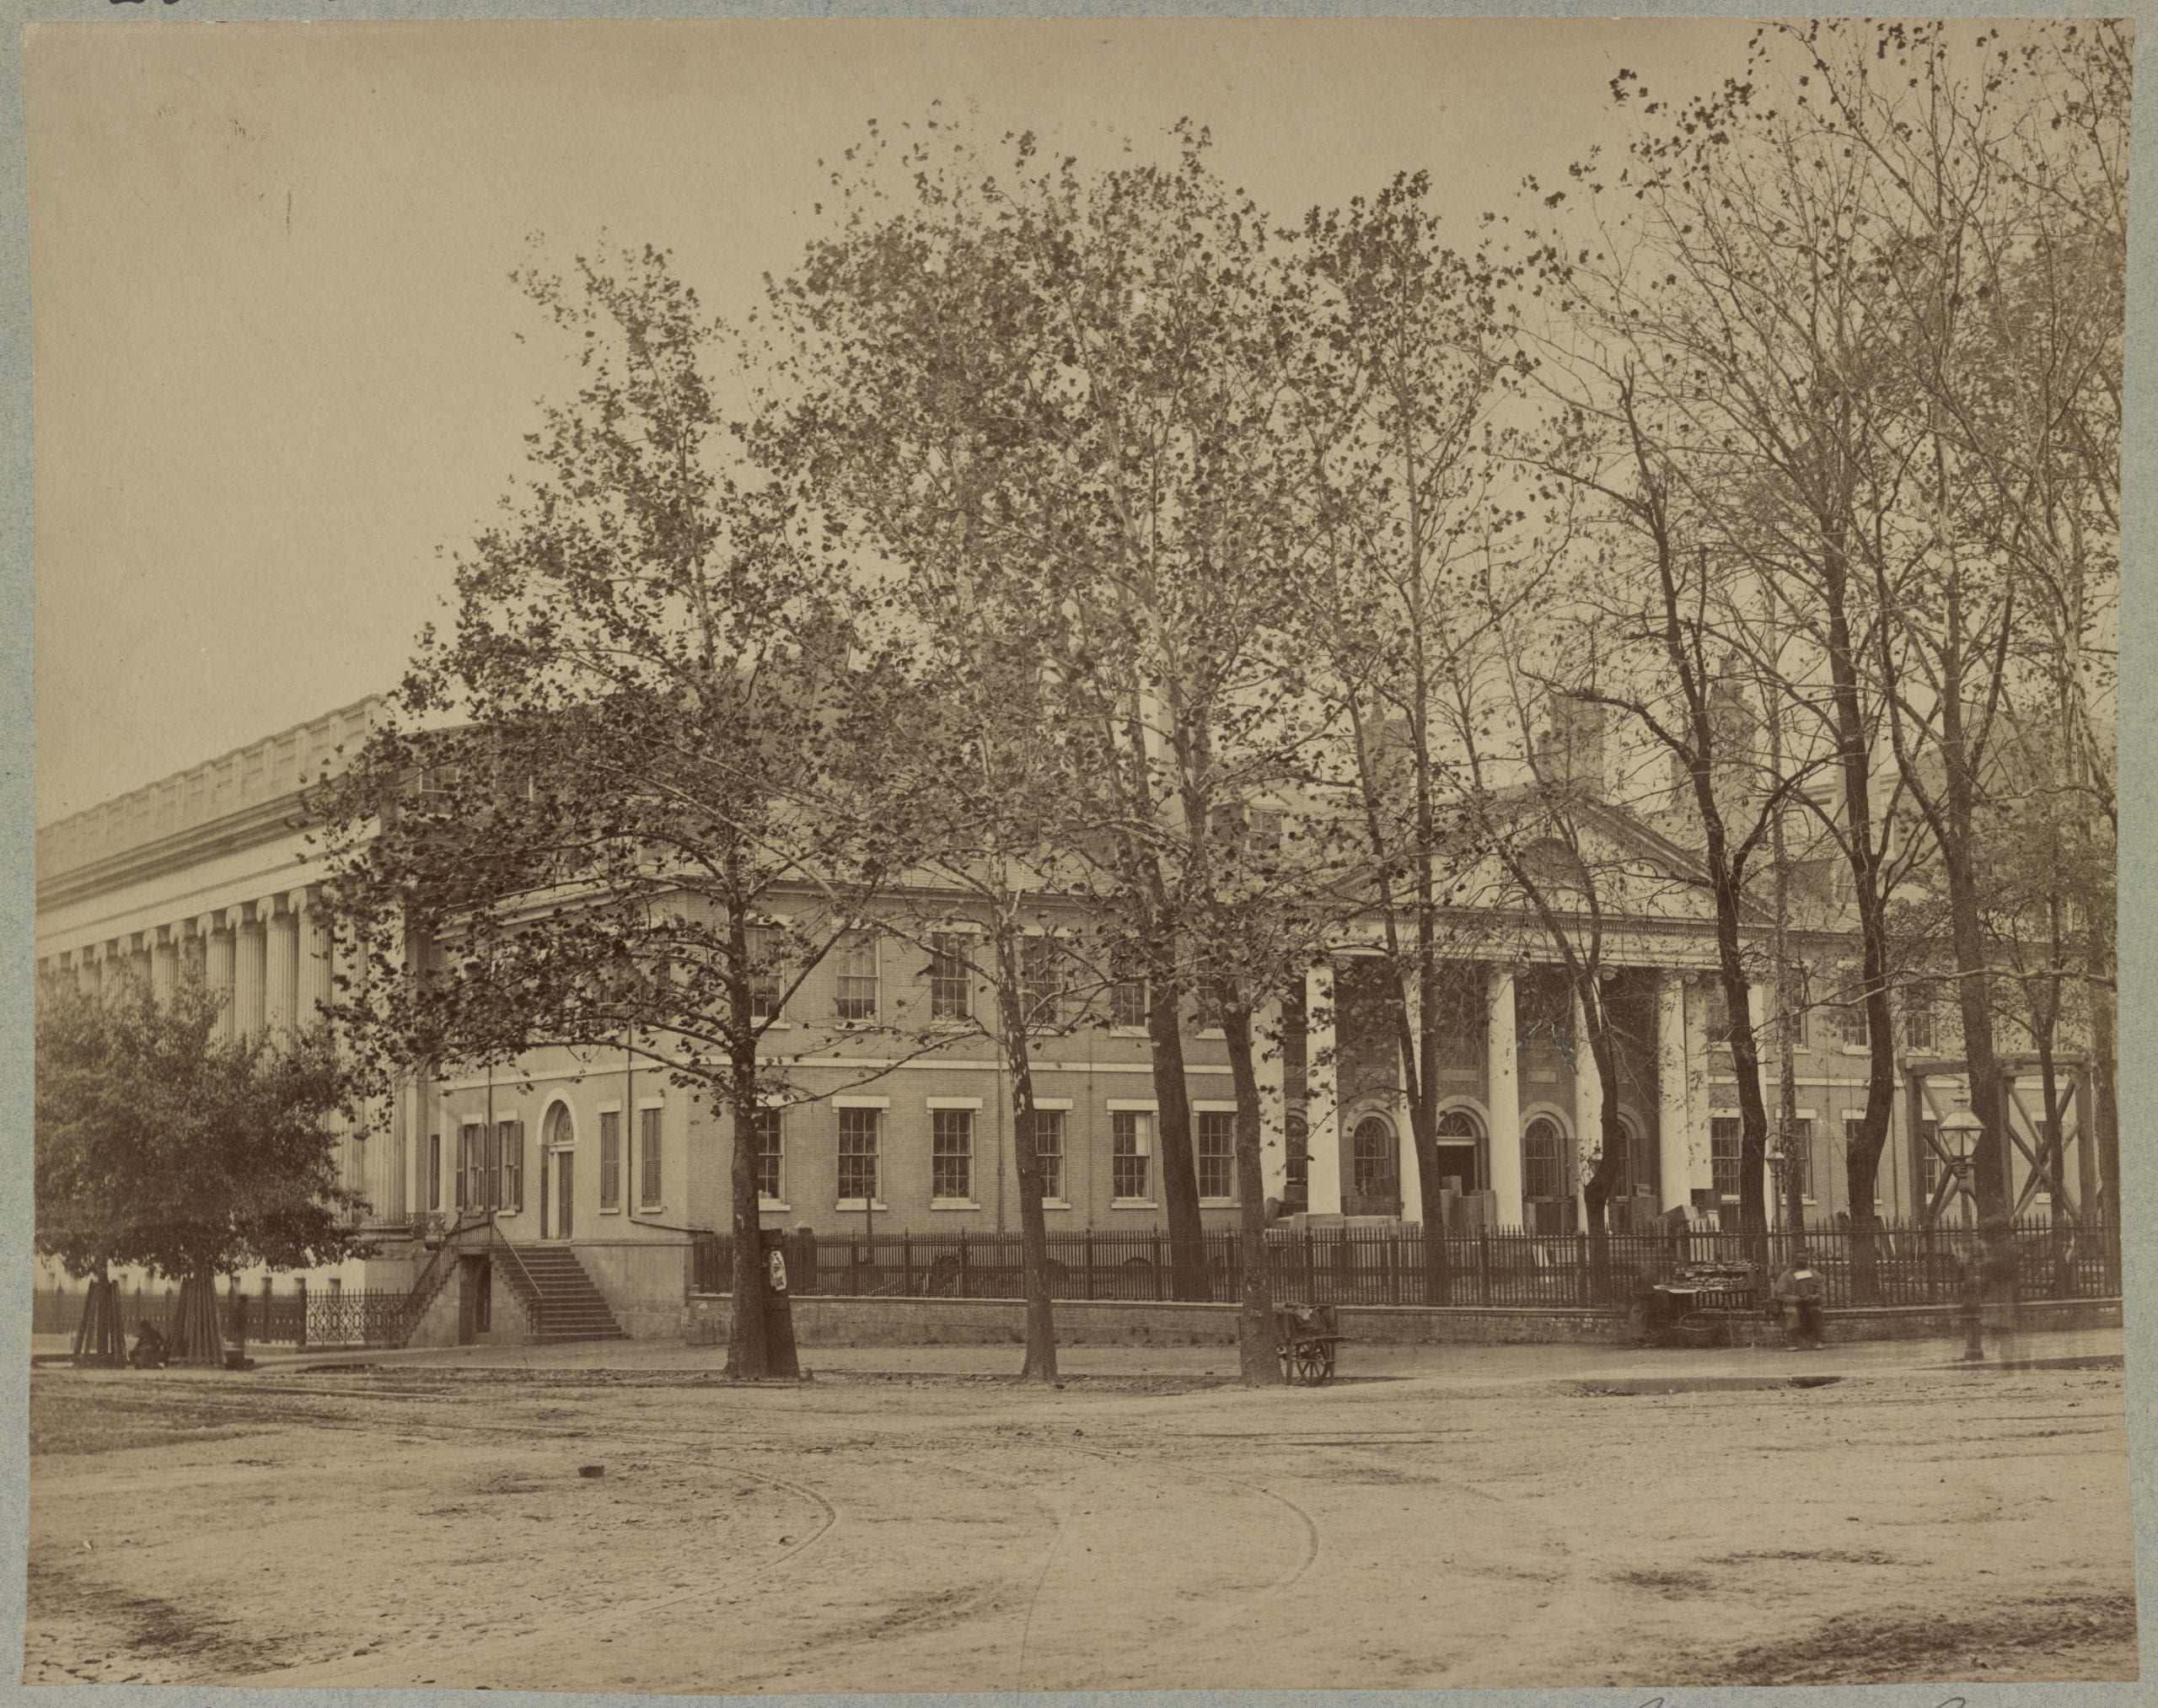 Old State Department Building, corner 15 Street and Pennsylvania Avenue - photo taken during the Civil War